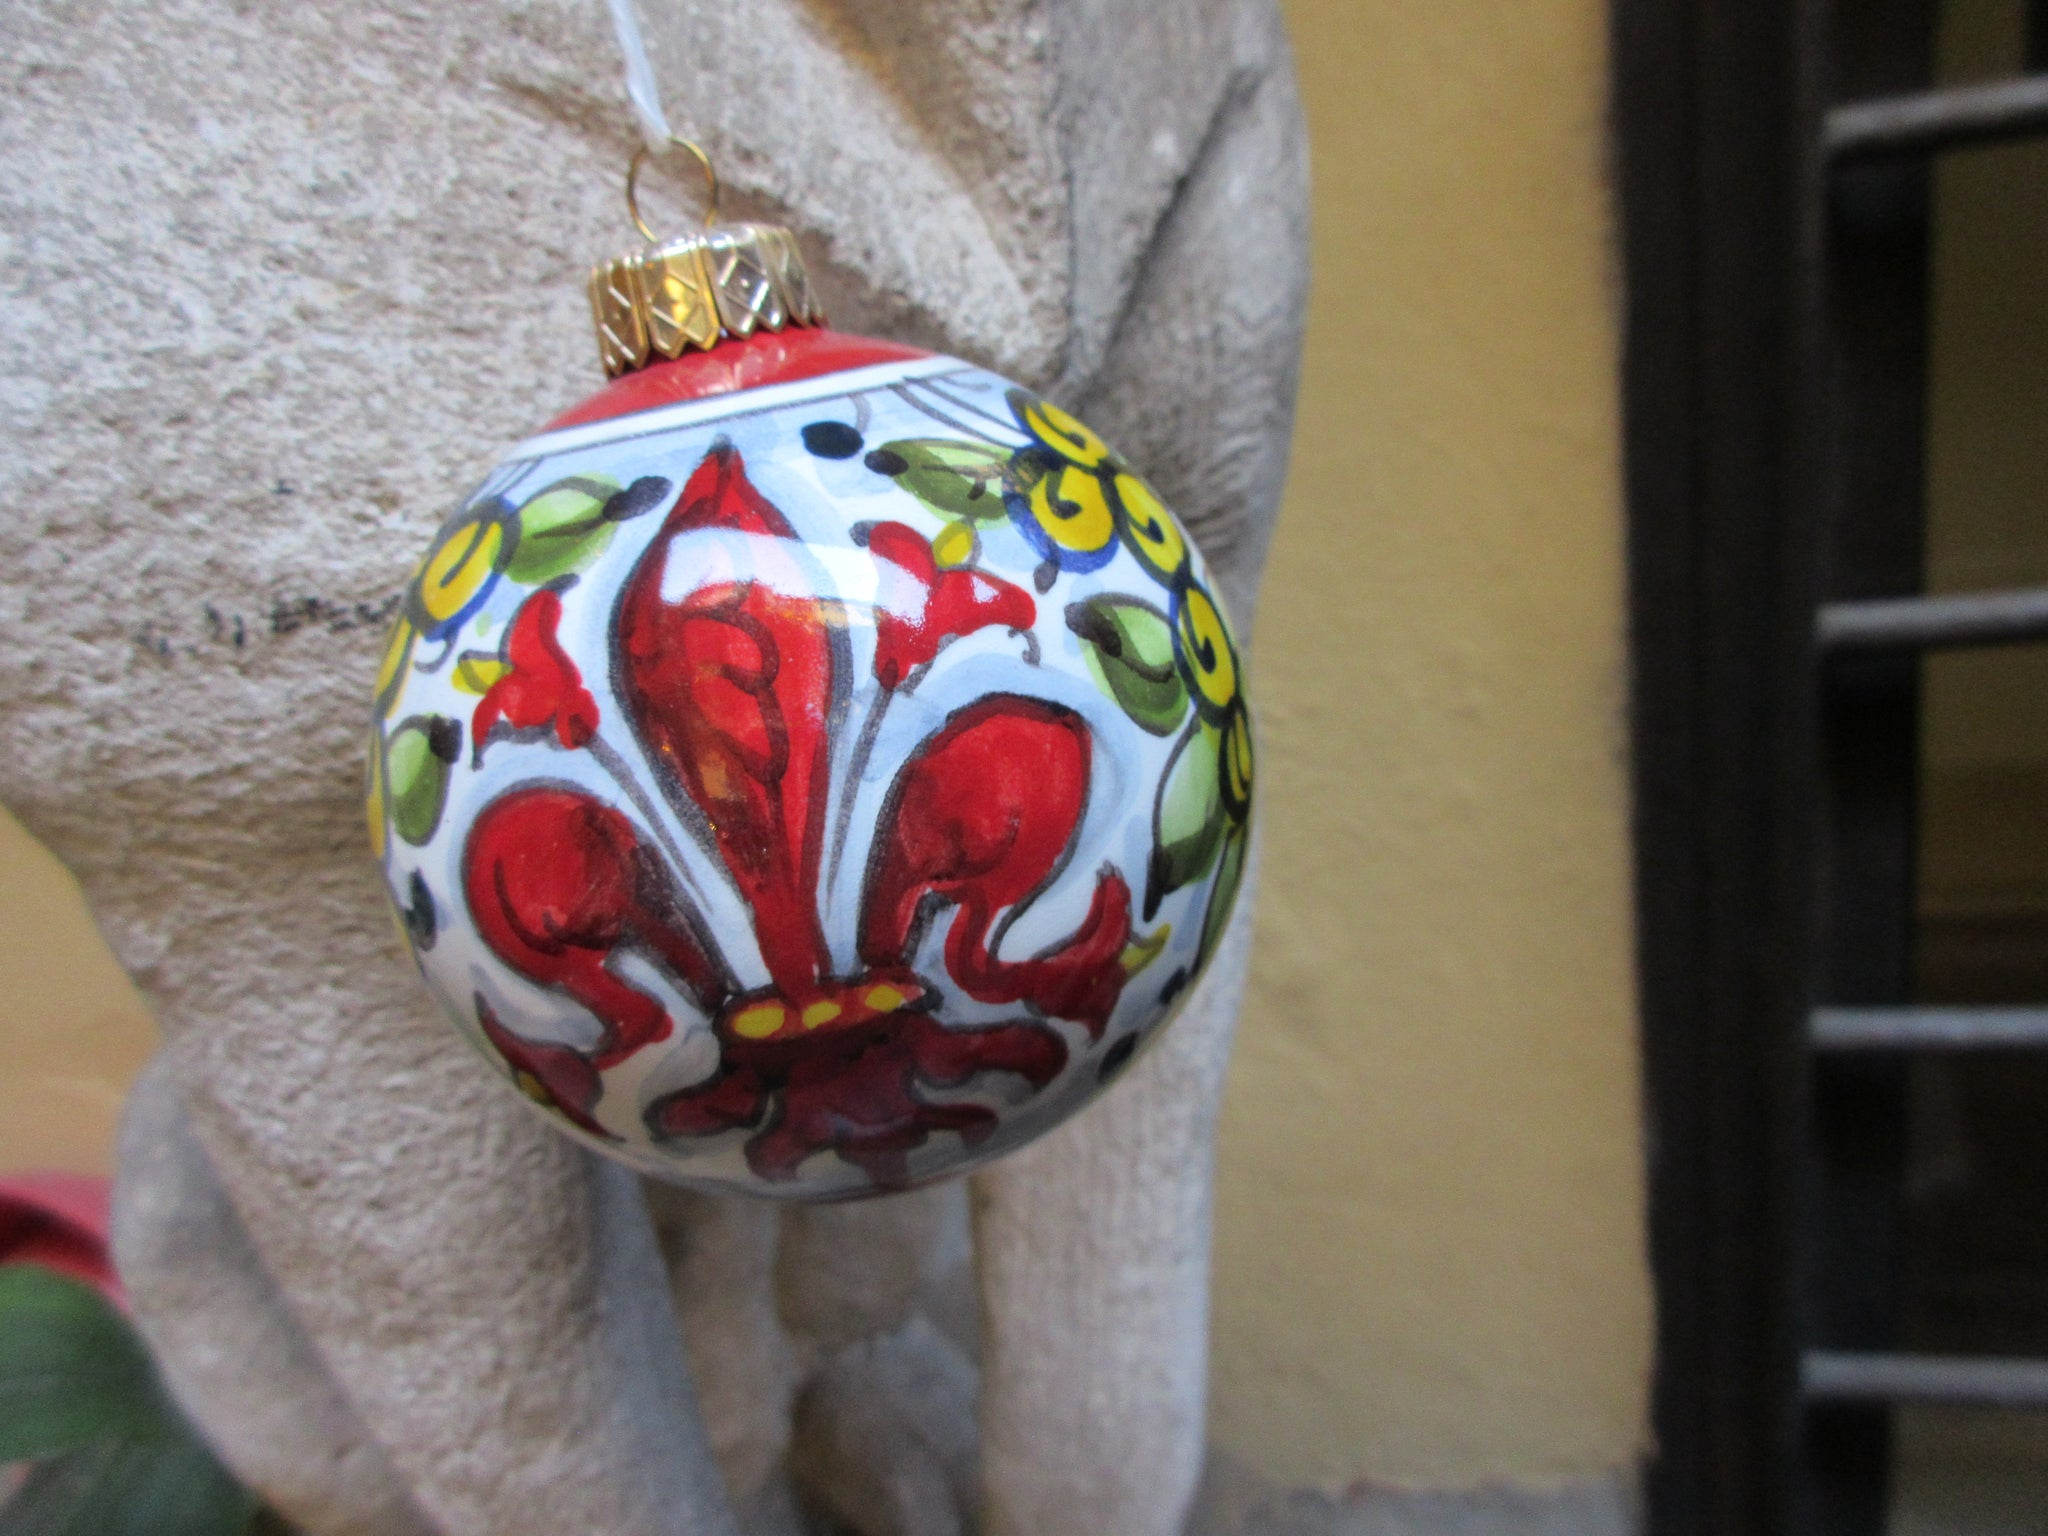 Tuscan ornament handmade, hand-painted with Fleus-de-lis, Florence design